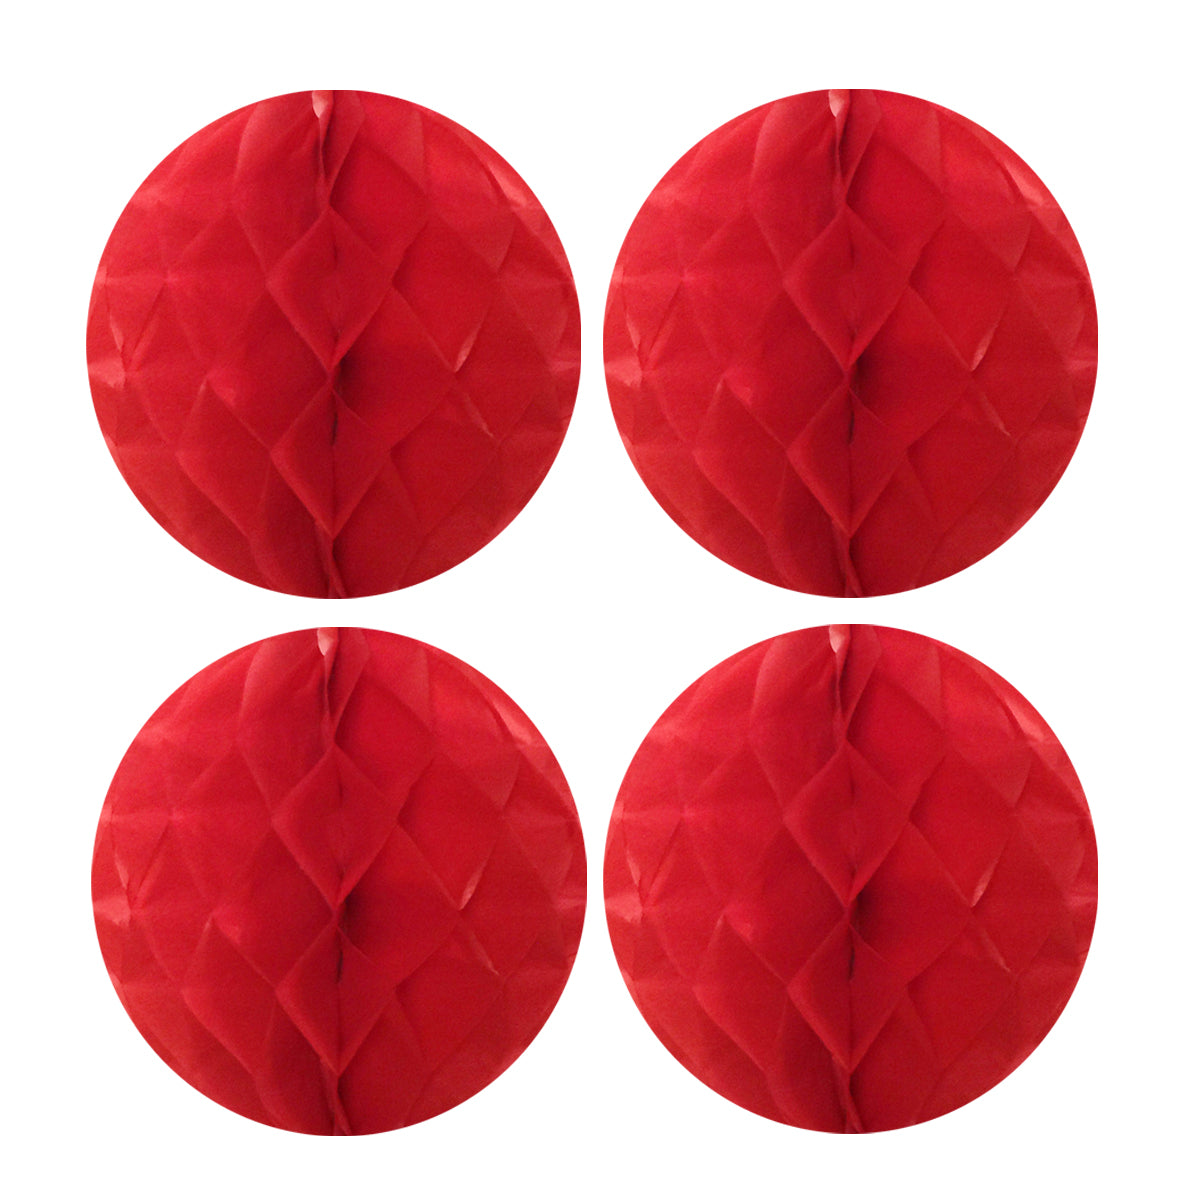 "Wrapables 8"" Set of 4 Tissue Honeycomb Ball Party Decorations"